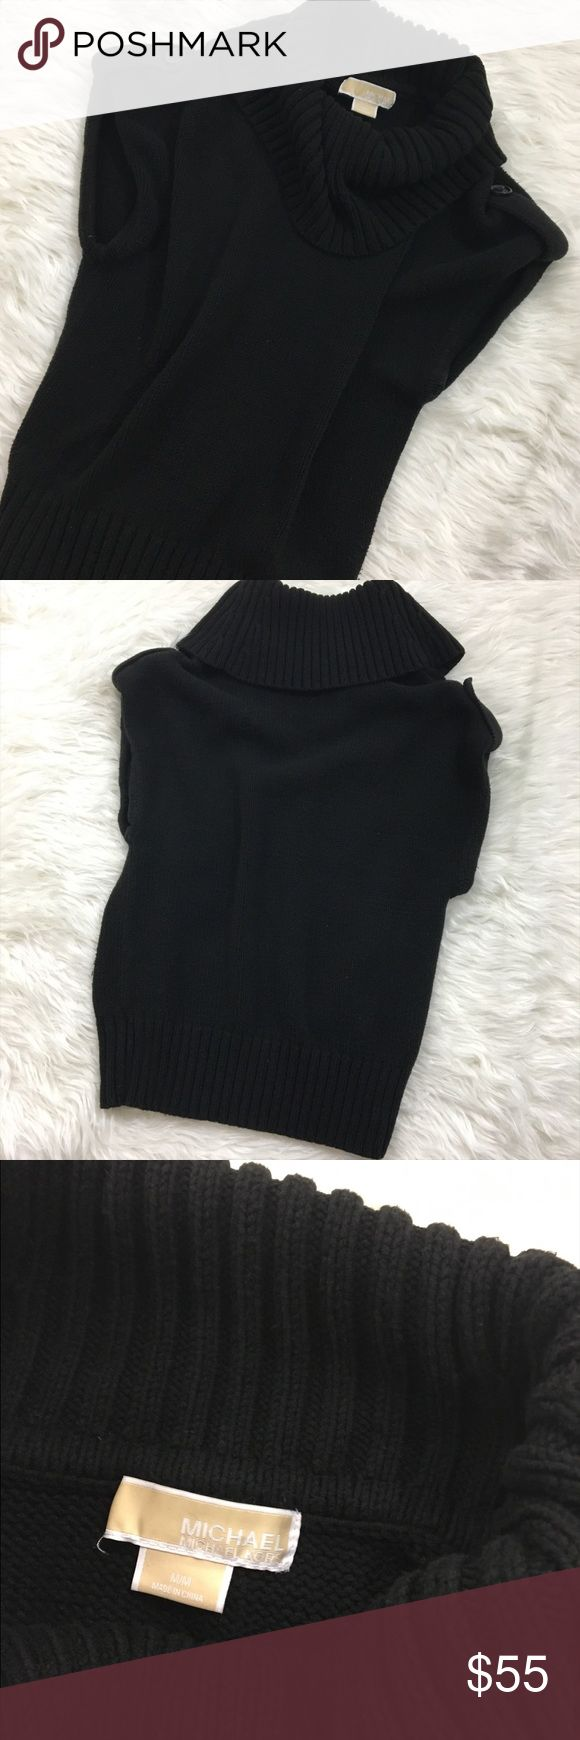 Michael Kors Sweater Vest Cozy sweater vest with a bulky neckline. It has two buttons on the shoulder part of it. Very warm. Great to layer over a solid or pattern long sleeve. In great conditions ▪Please feel free to ask questions or for additional pictures ▪Accepting private offers. Michael Kors Sweaters